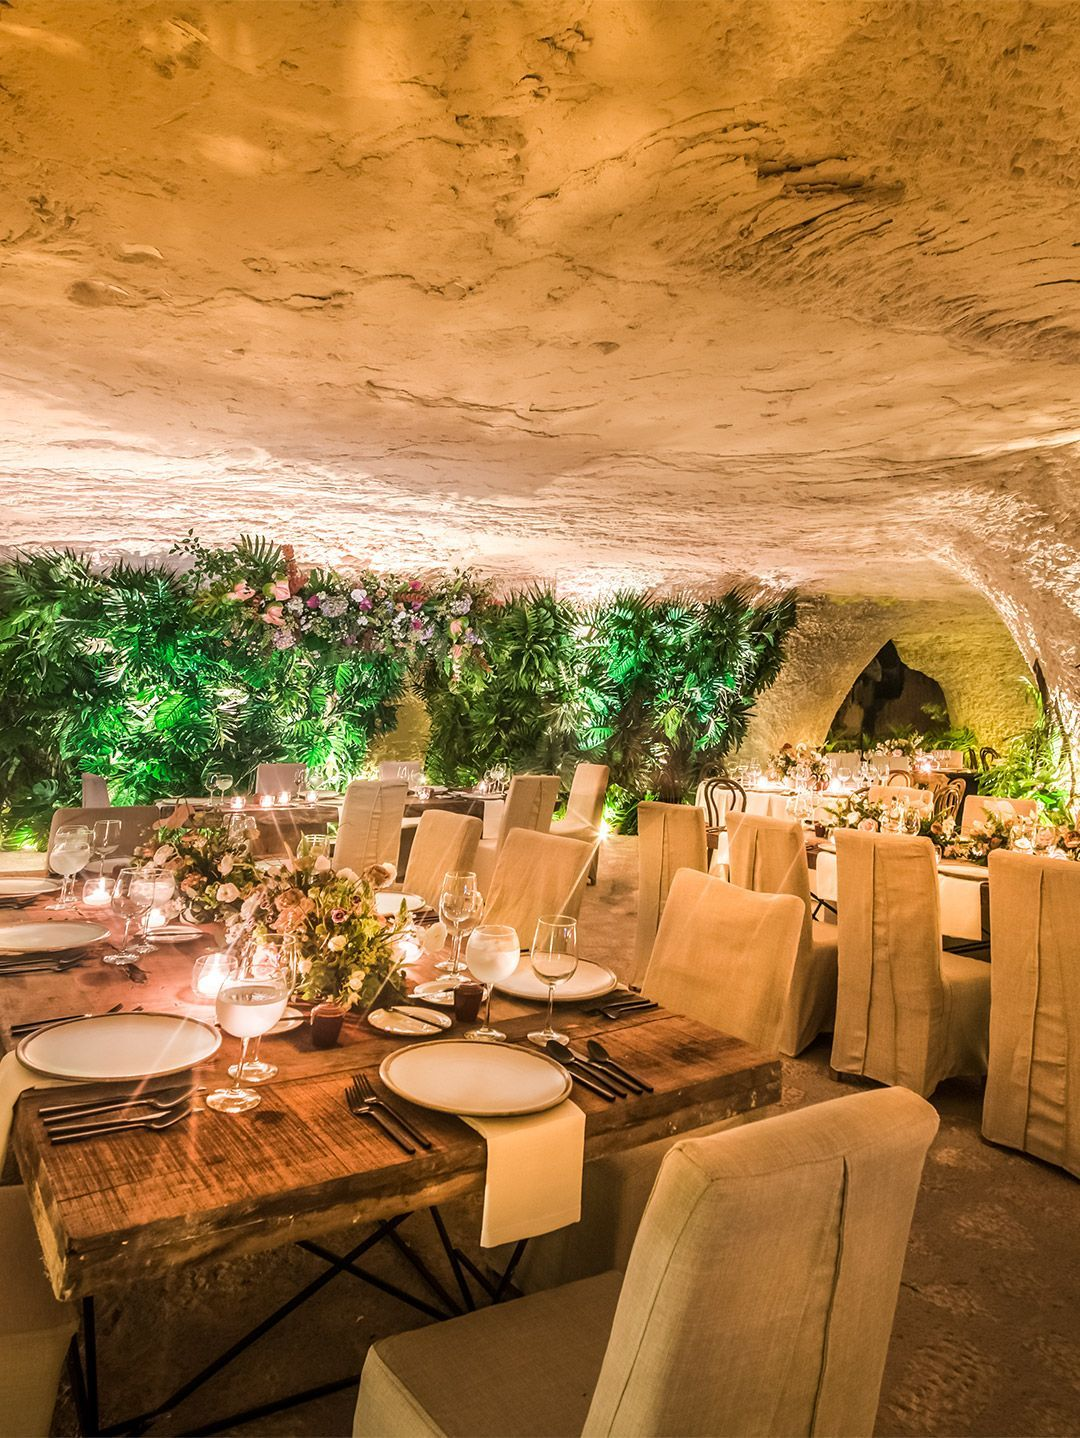 A Unique Culinary Experience In Riviera Maya At Hotel Xcaret Mexico This All Inclusive Resort O In 2020 Cancun Destination Wedding Mexico Hotels Cancun Mexico Hotels